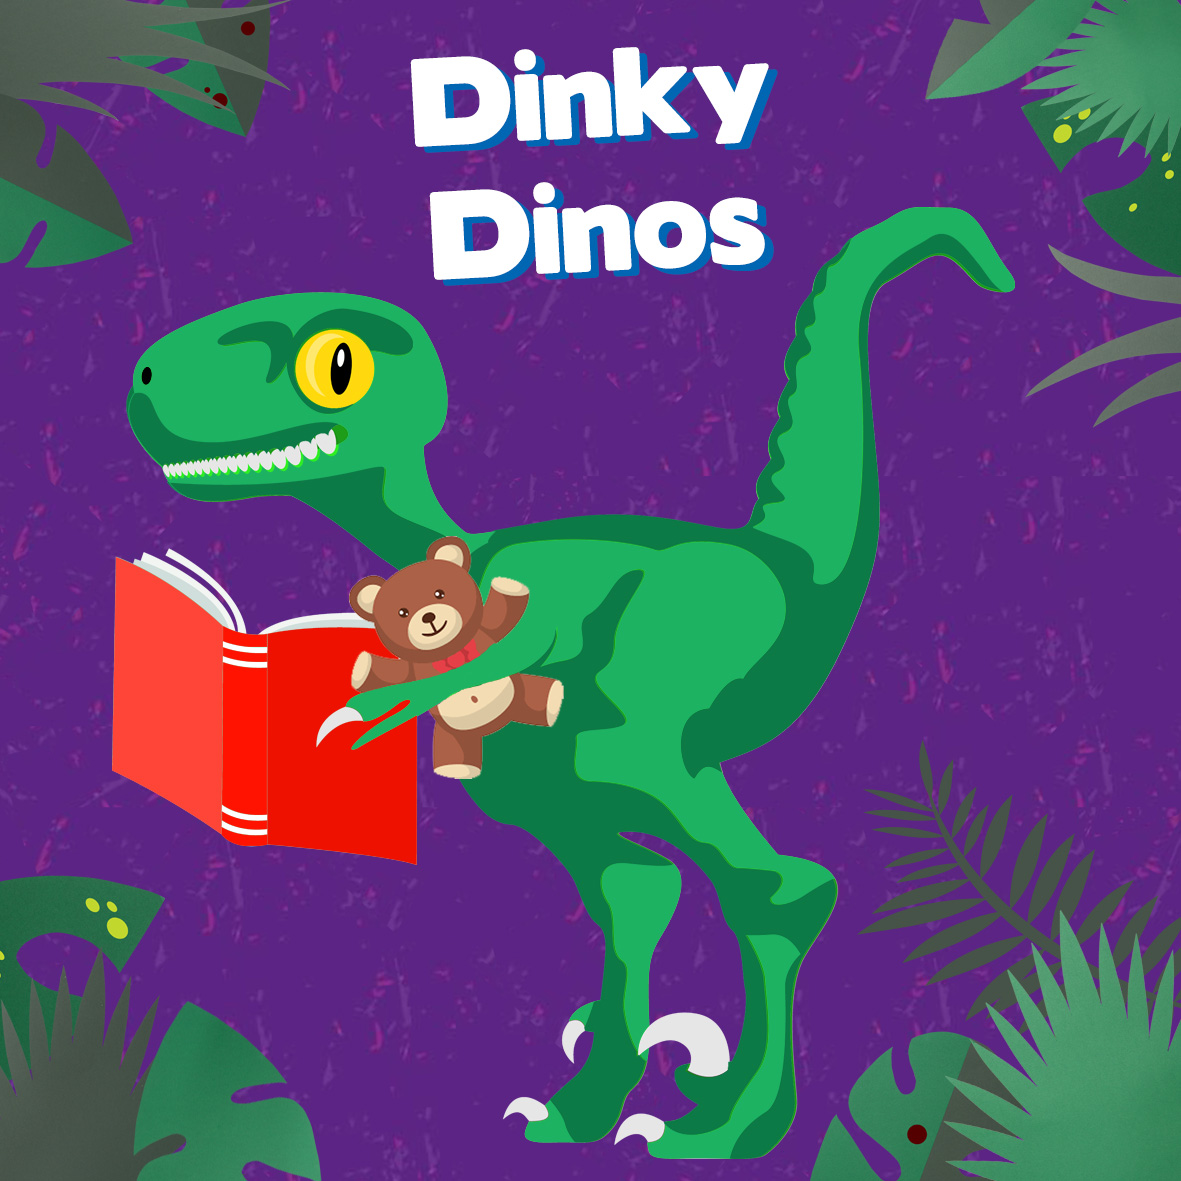 Dinky Dinos: The Day the Crayons Quit